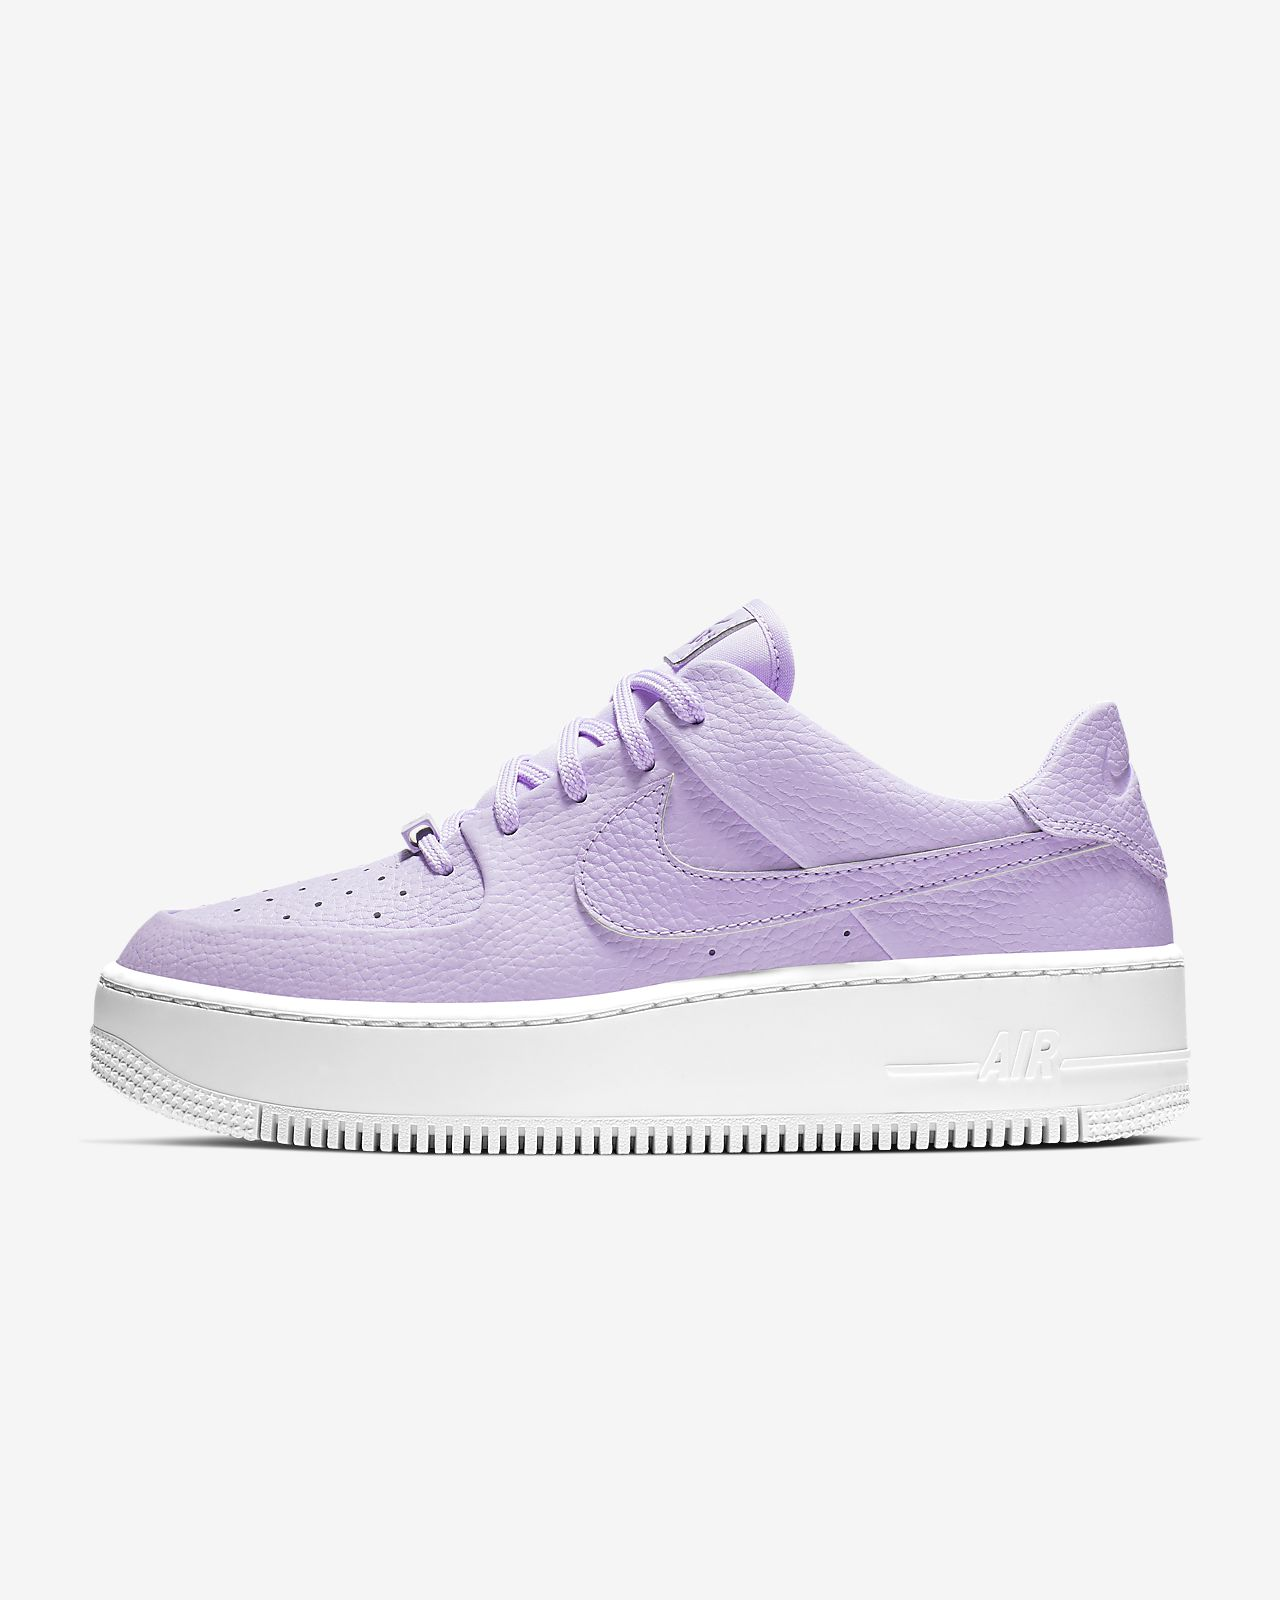 promo code 0046c f456f Women s Shoe. Nike Air Force 1 Sage Low